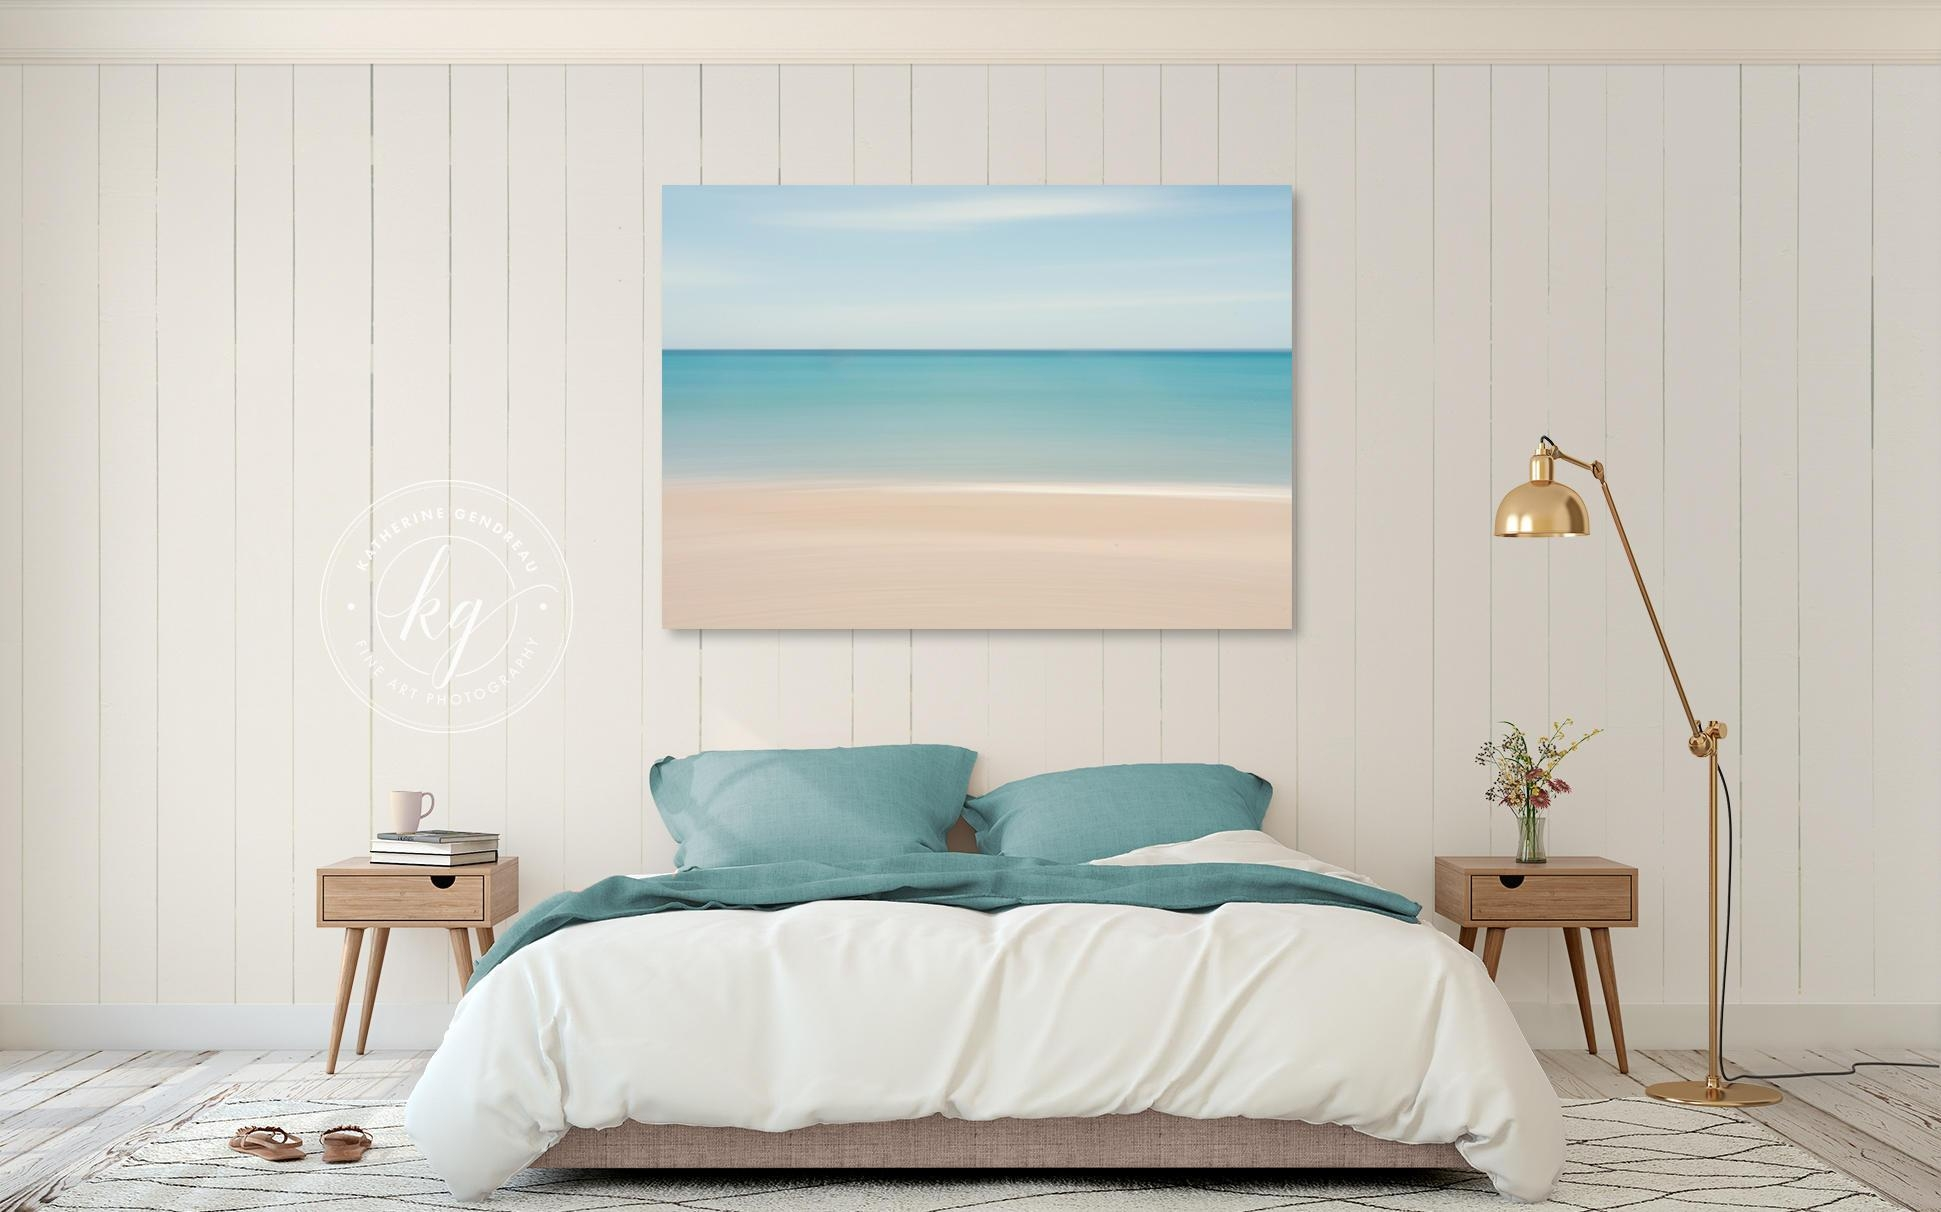 Beach Decor Canvas Gallery Wrap Abstract Ocean Photo Large Intended For Beach Wall Art For Bedroom (View 9 of 20)